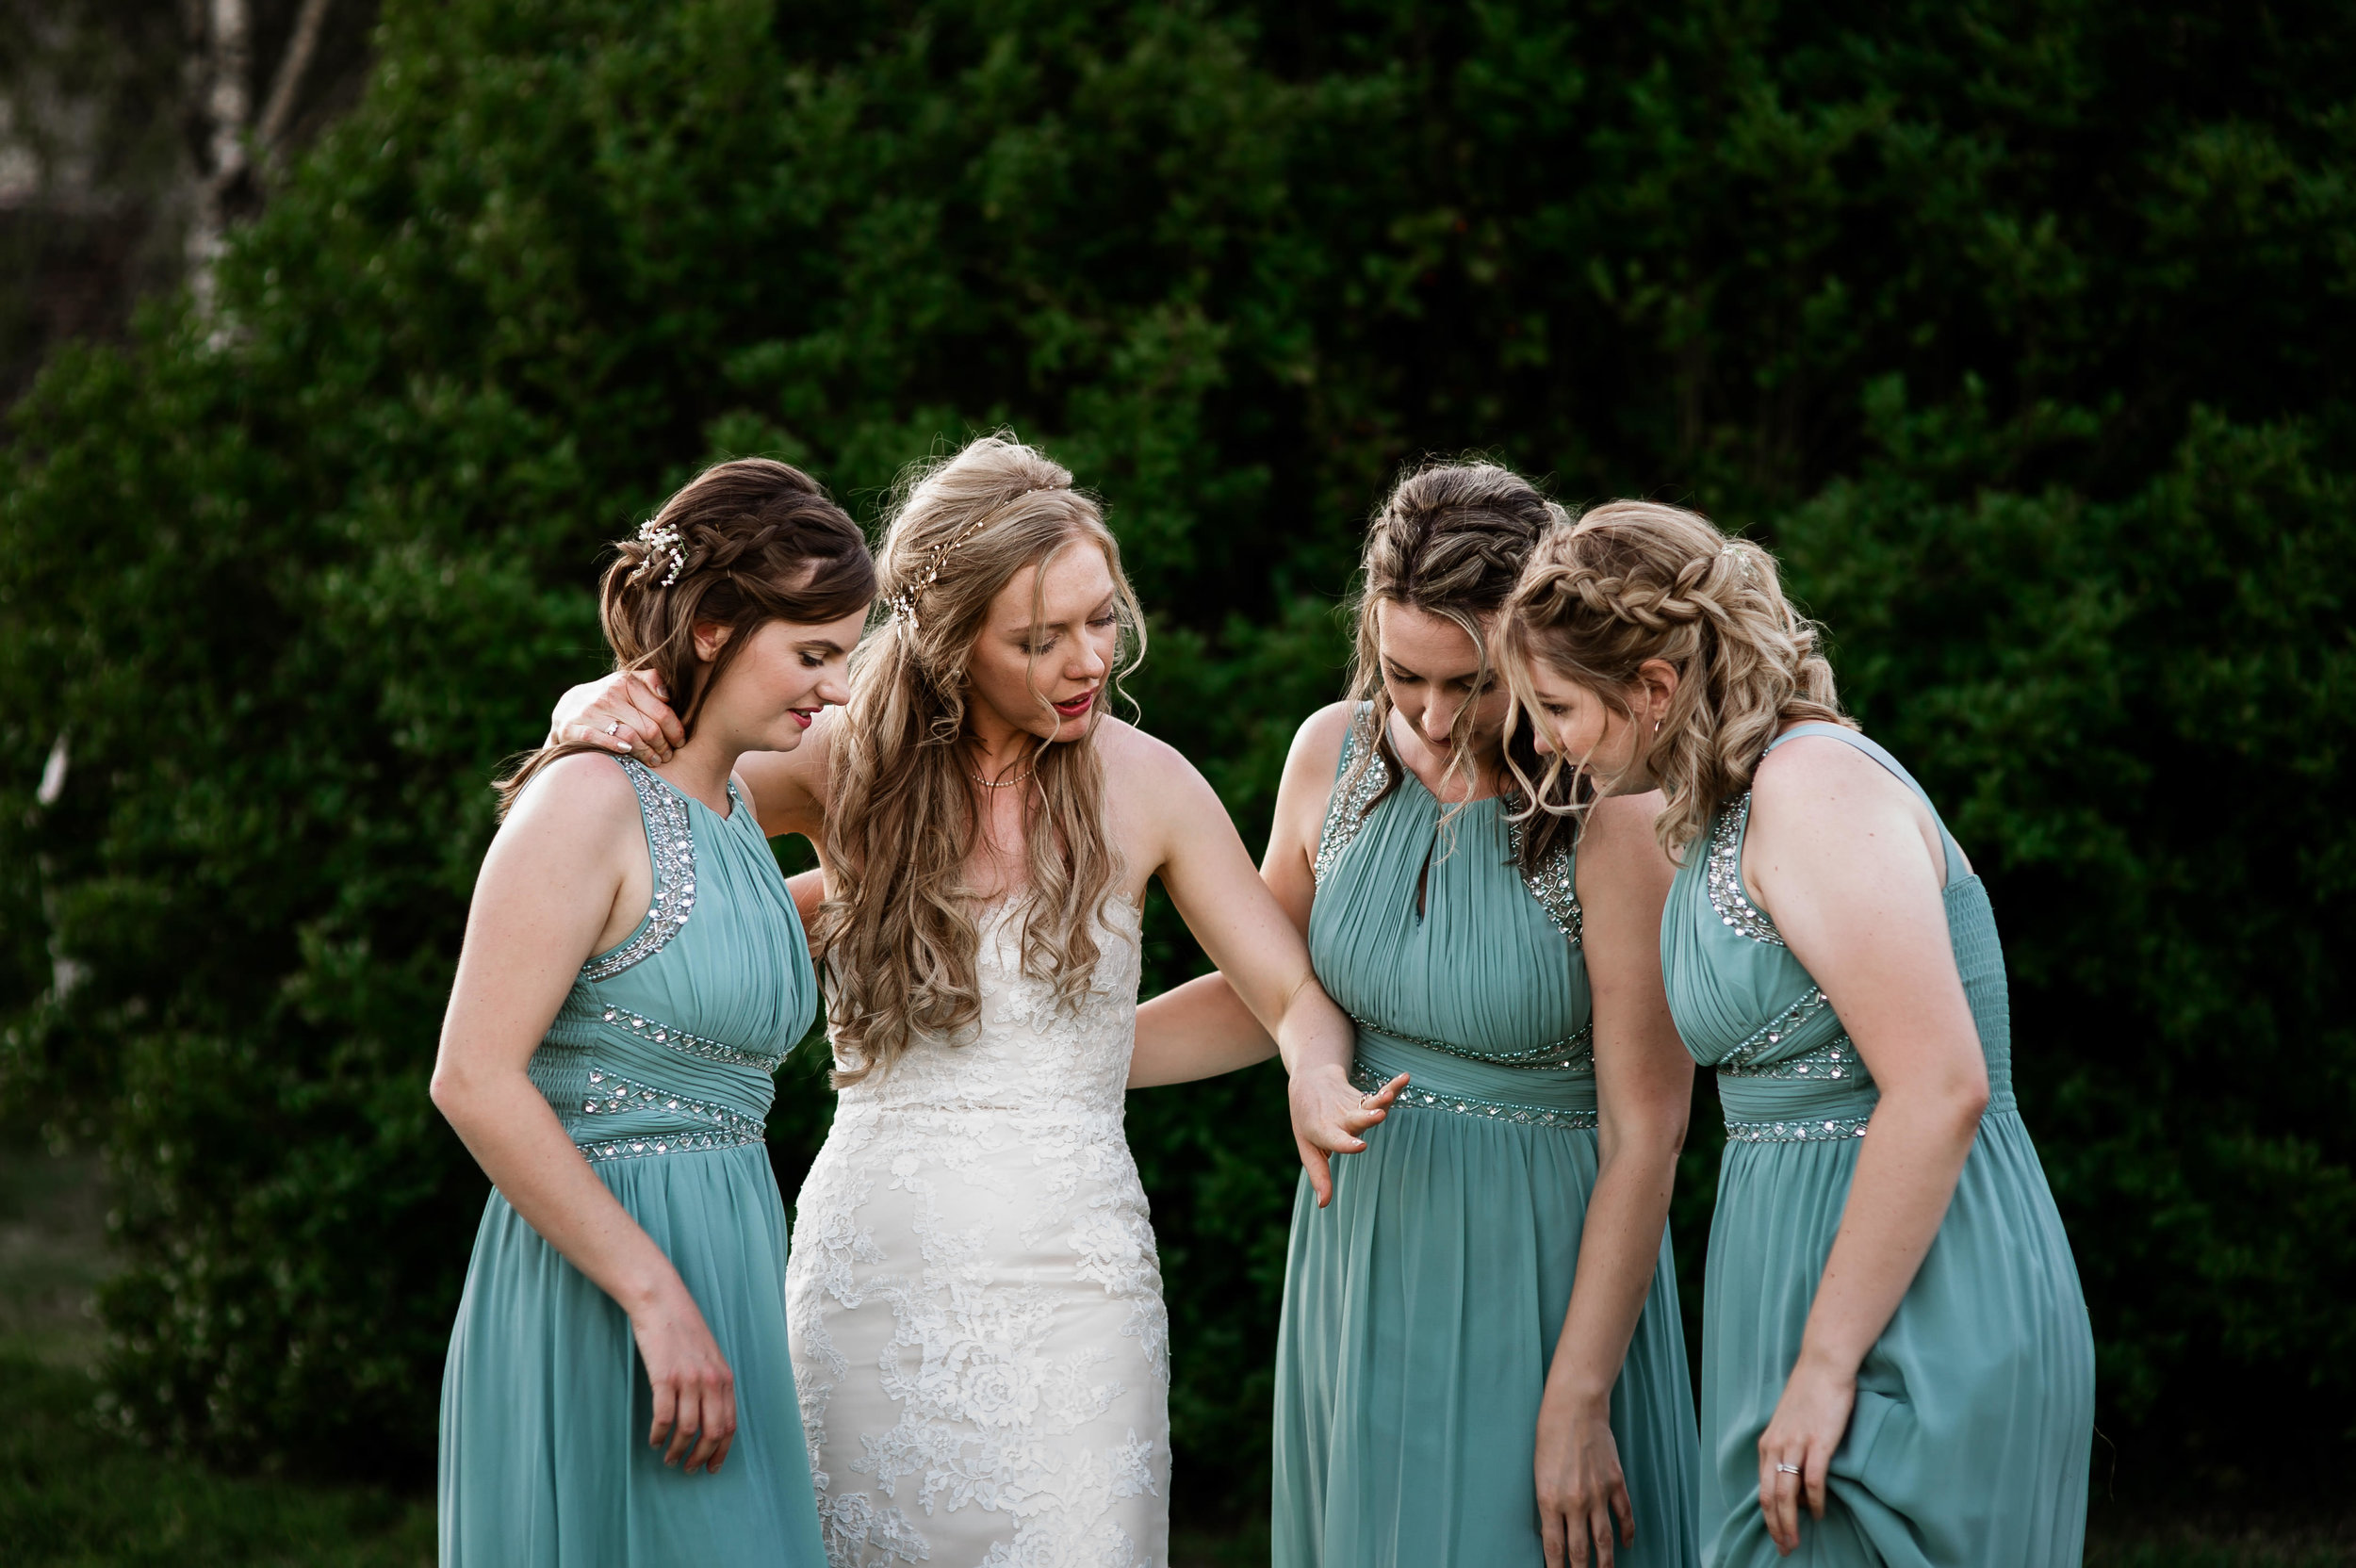 C&D - Wiltshire weddings (209 of 243).jpg